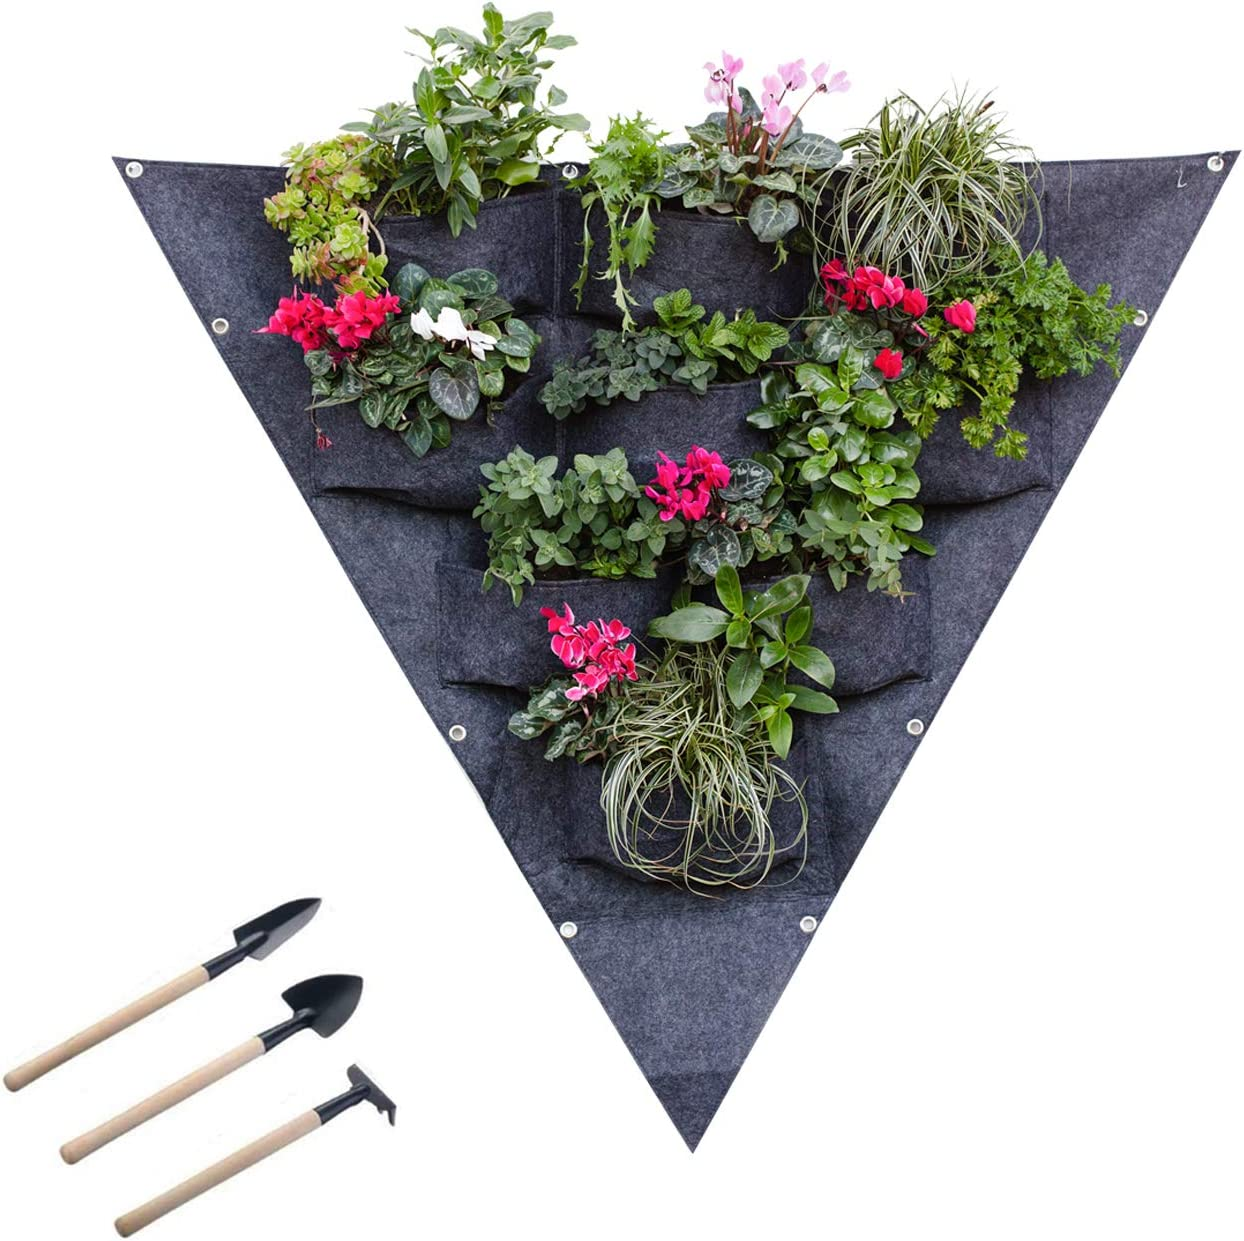 Vertical Hanging Garden Wall Planter 9 Pockets - Waterproof Hanging Planter for Balcony, Patio, Courtyards. Ideal for Planting Herbs, Flowers, Vegetables. Set of Small Garden Tools Included